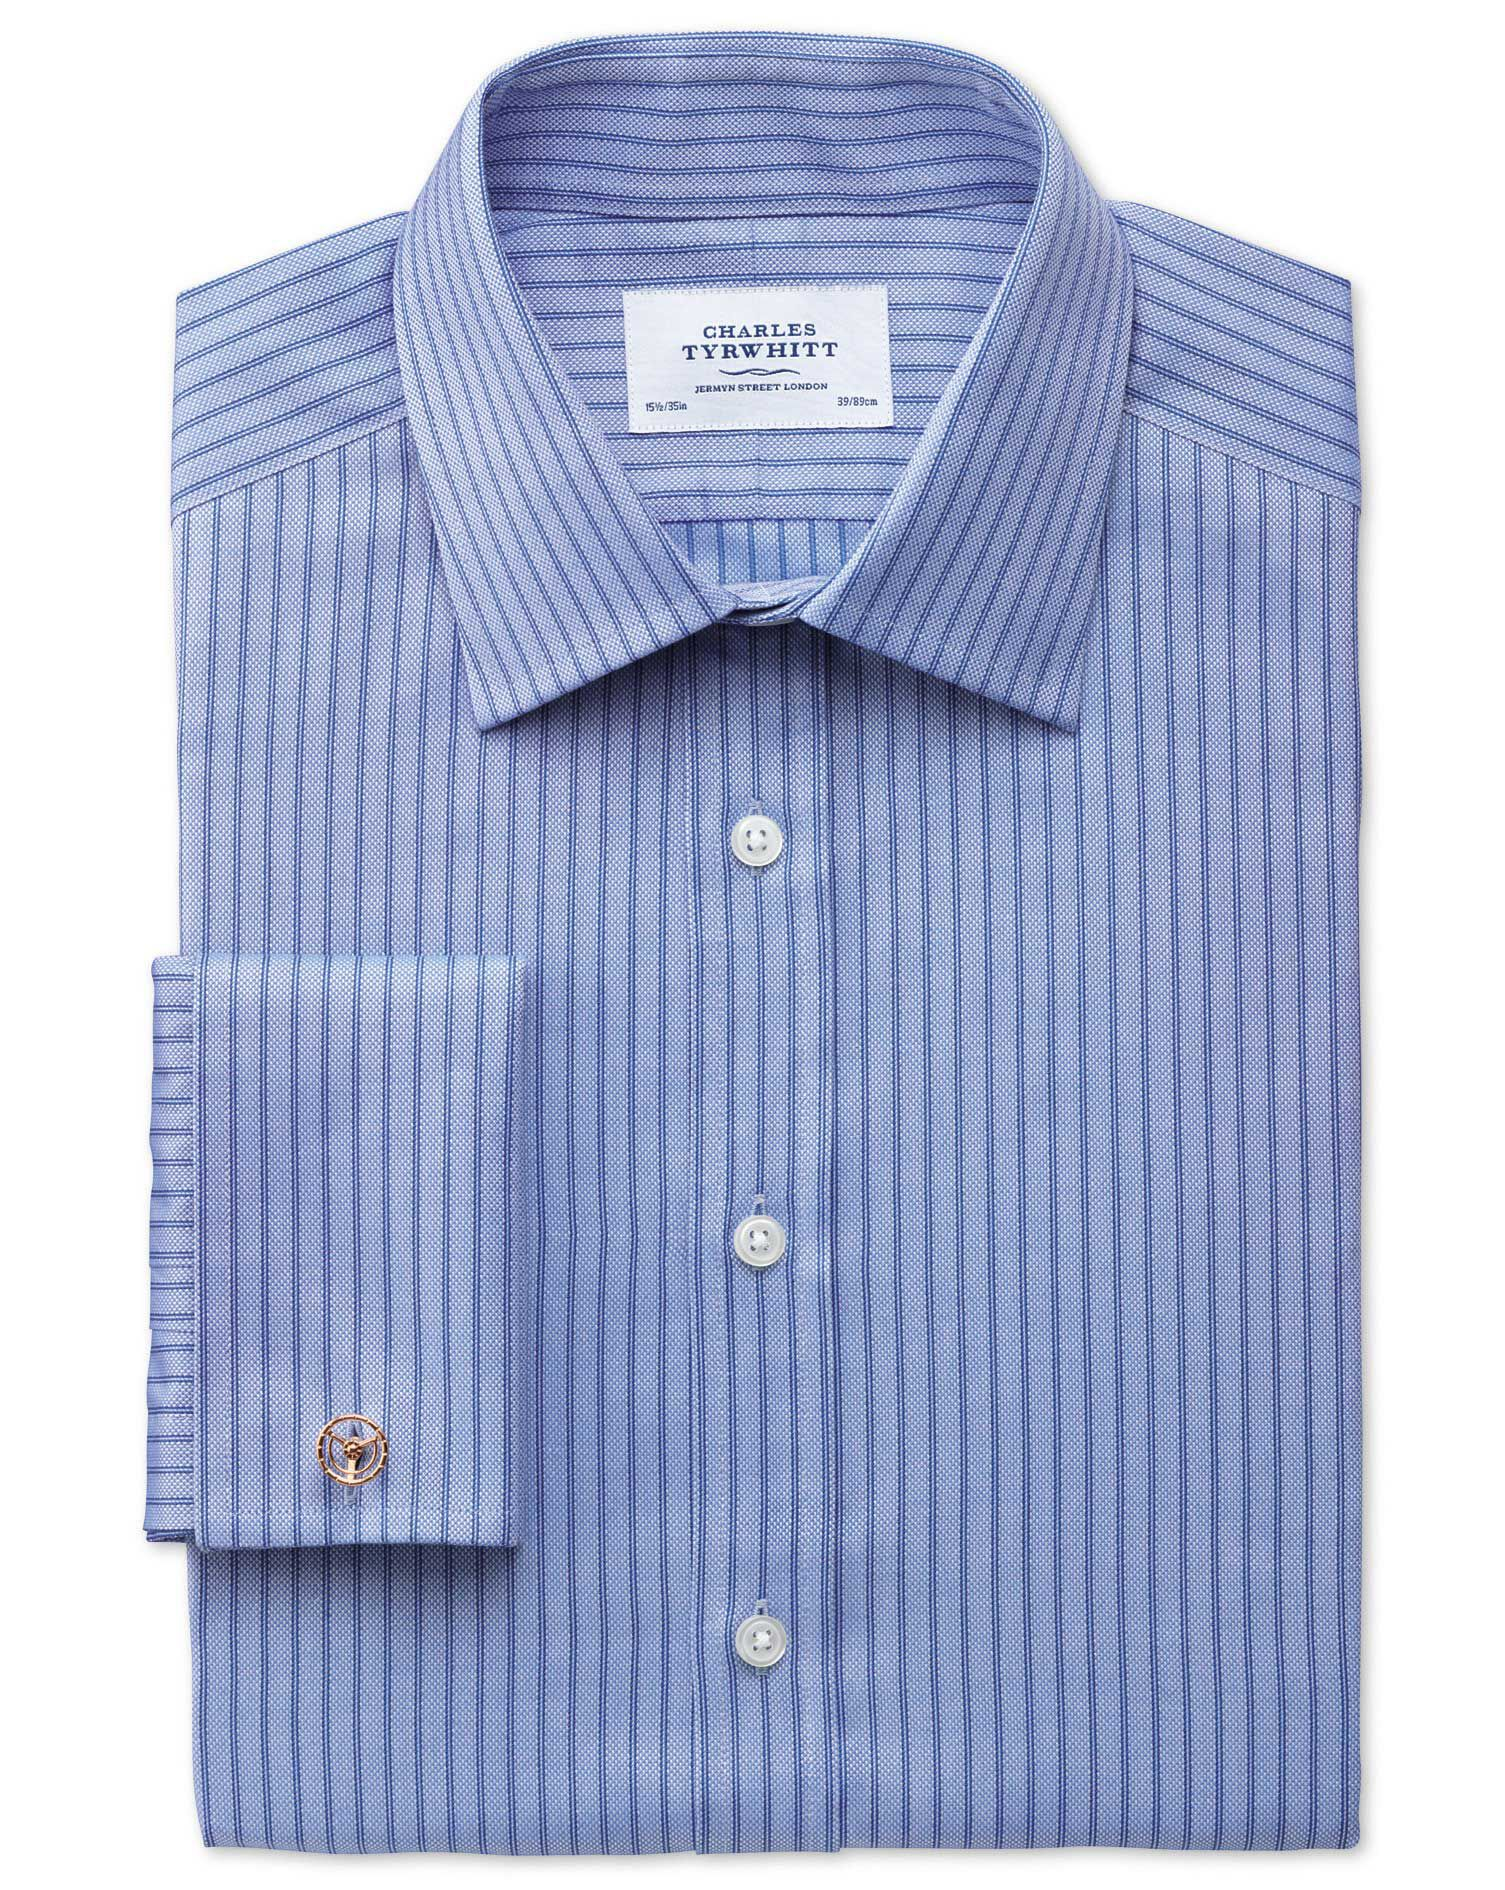 Classic Fit Egyptian Cotton Textured Stripe Sky Blue Formal Shirt Double Cuff Size 15.5/36 by Charle